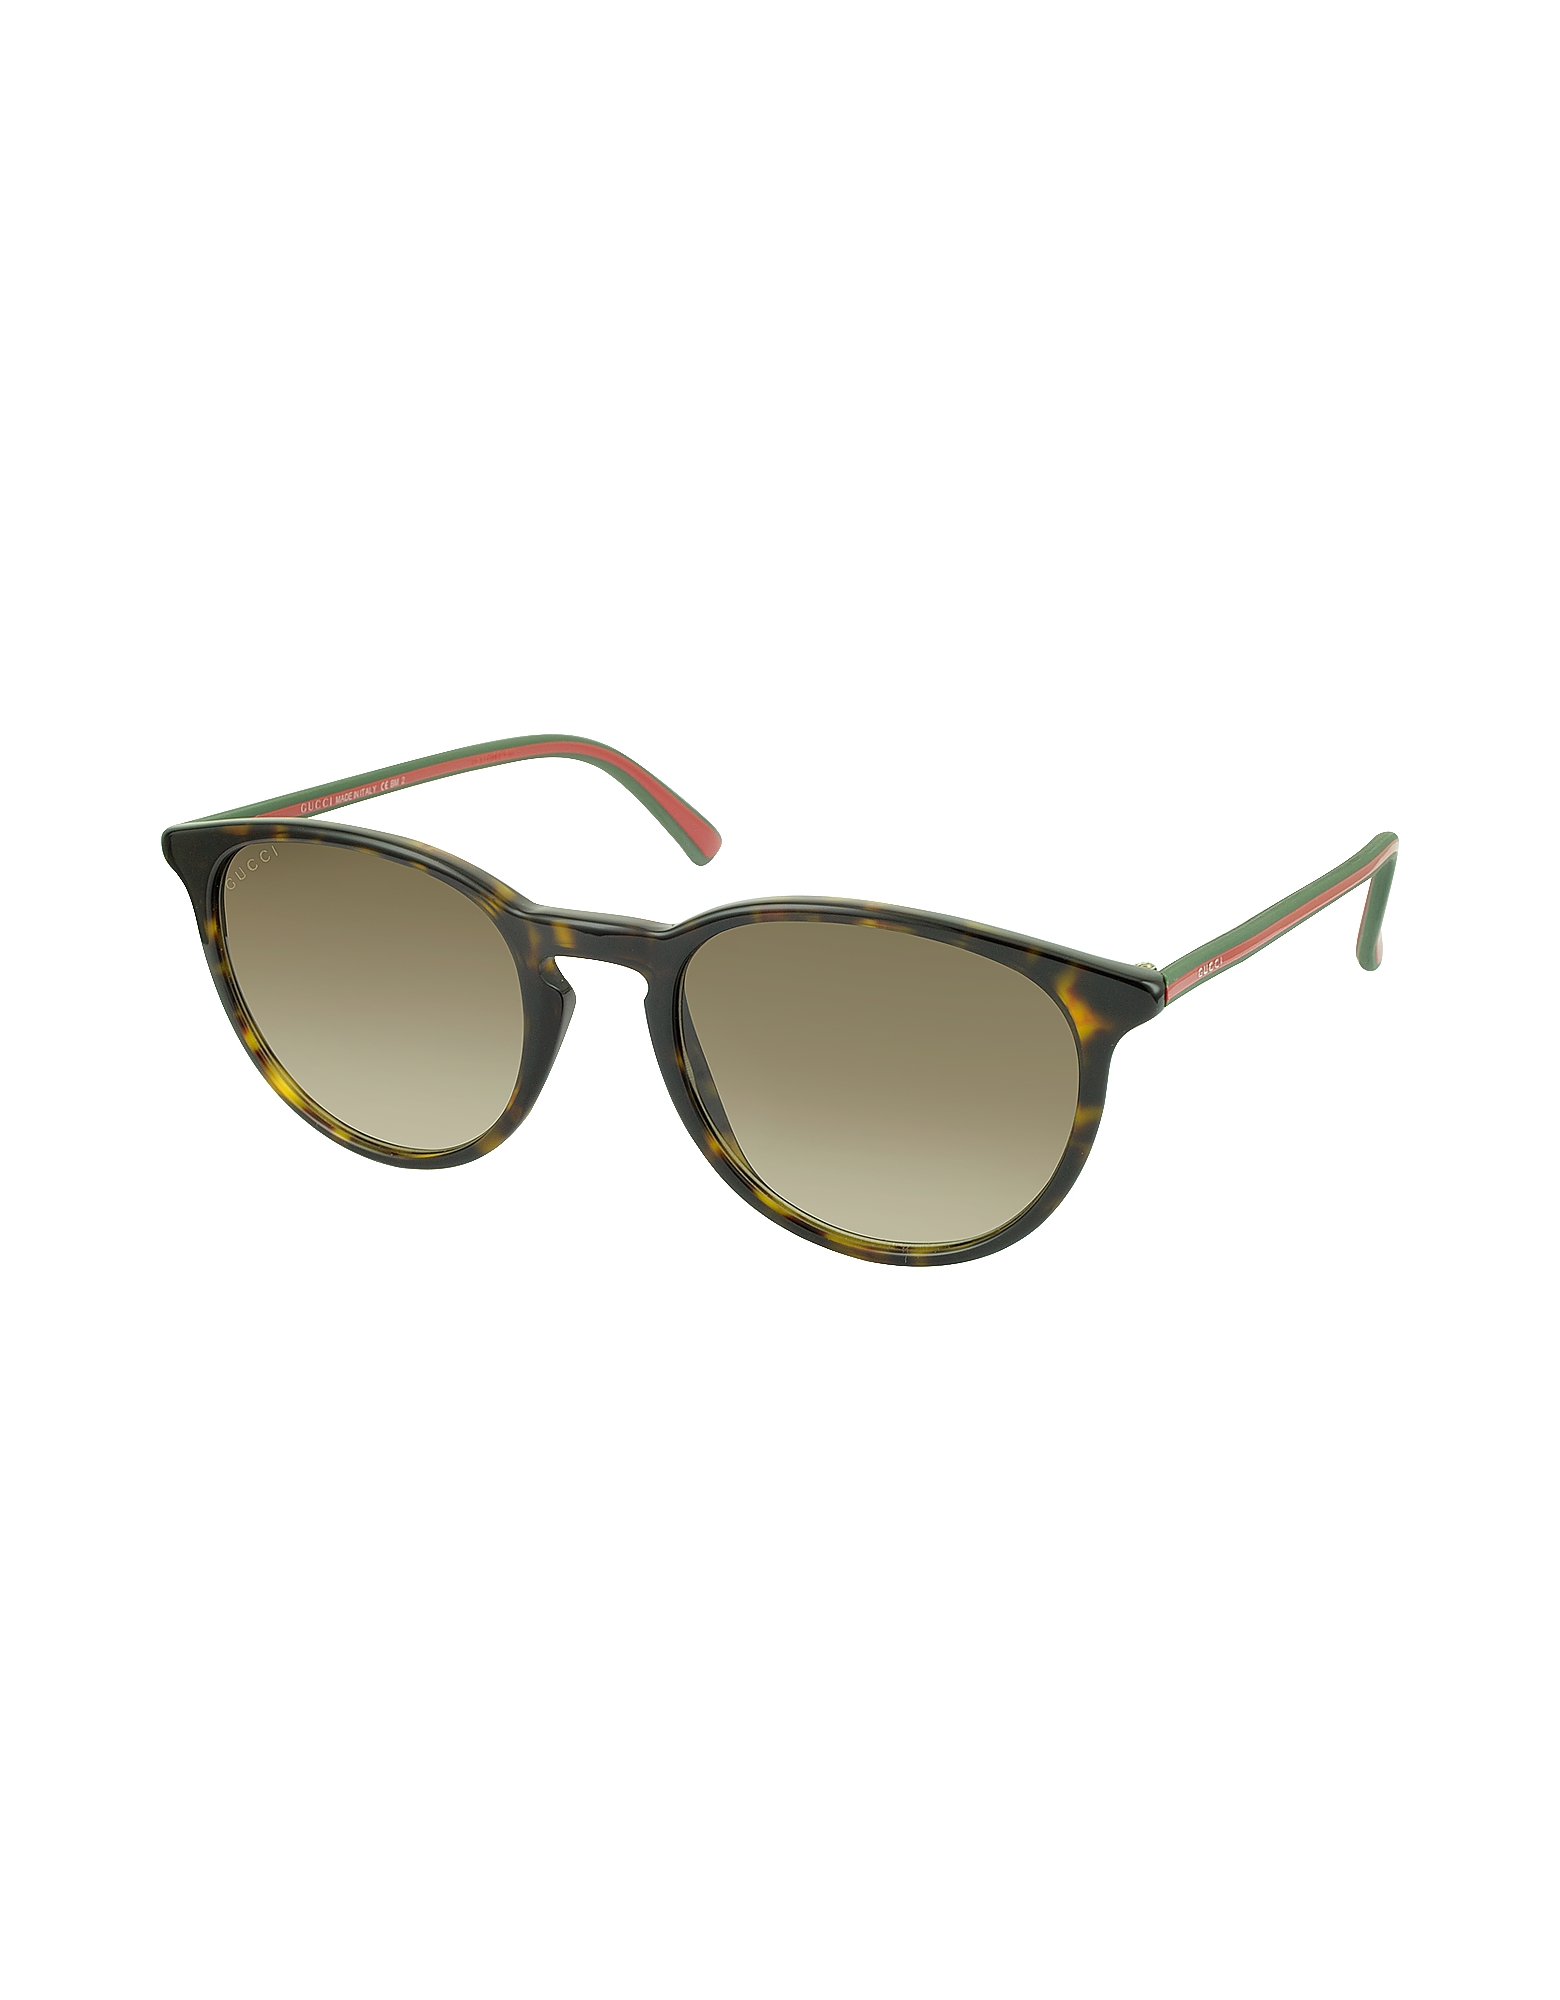 GG 1102/S Acetate Round Sunglasses w/Red & Green Temples от Forzieri.com INT